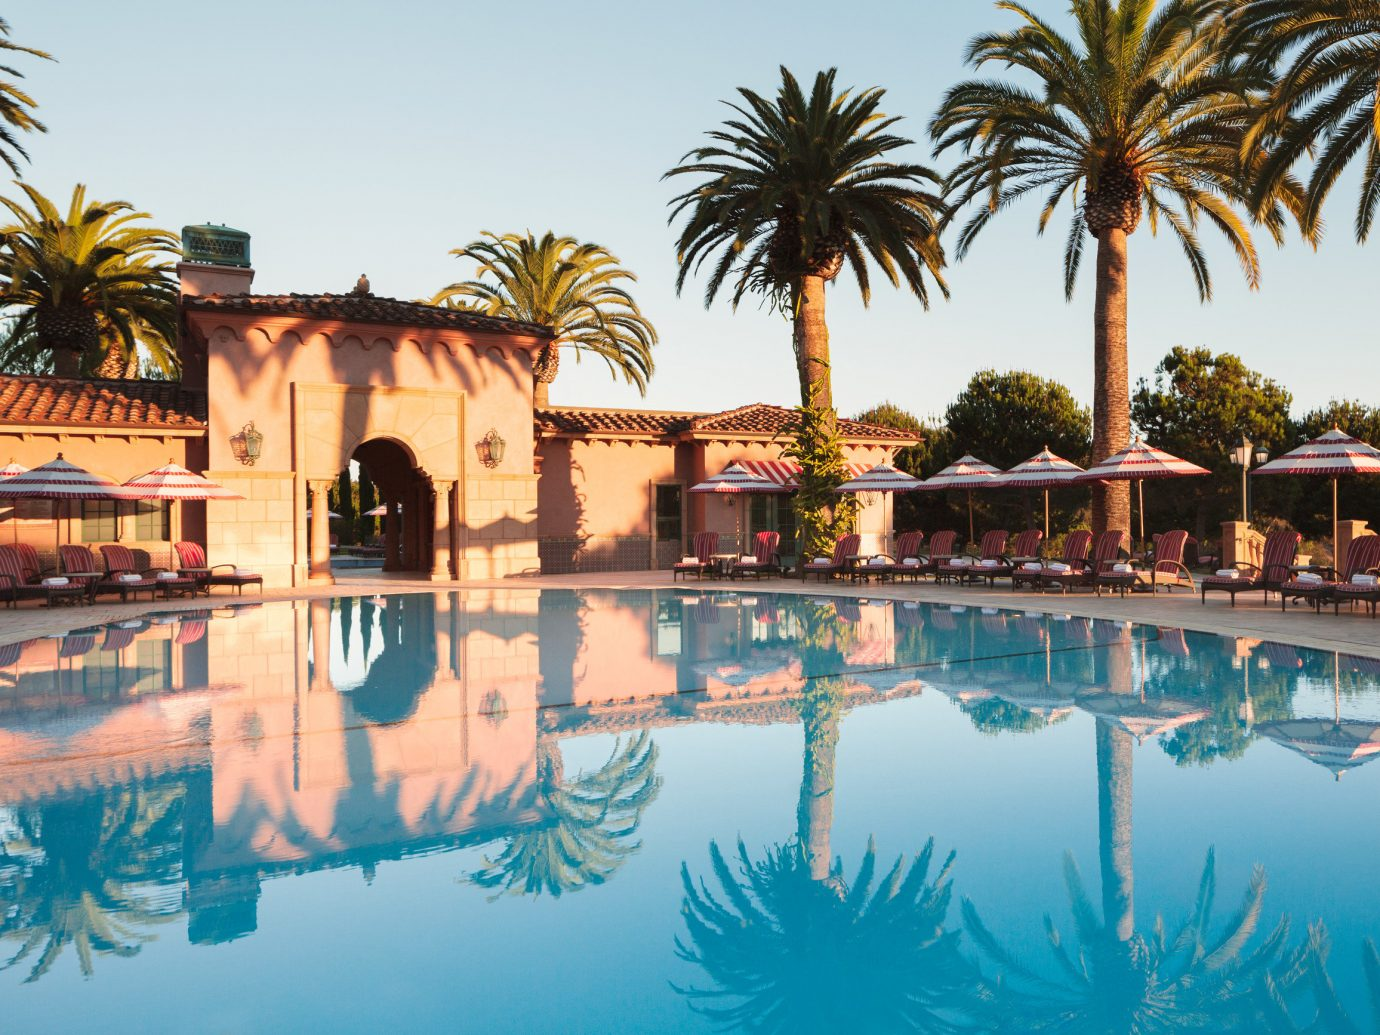 San Diego Resort - The Fairmont Grand Del Mar